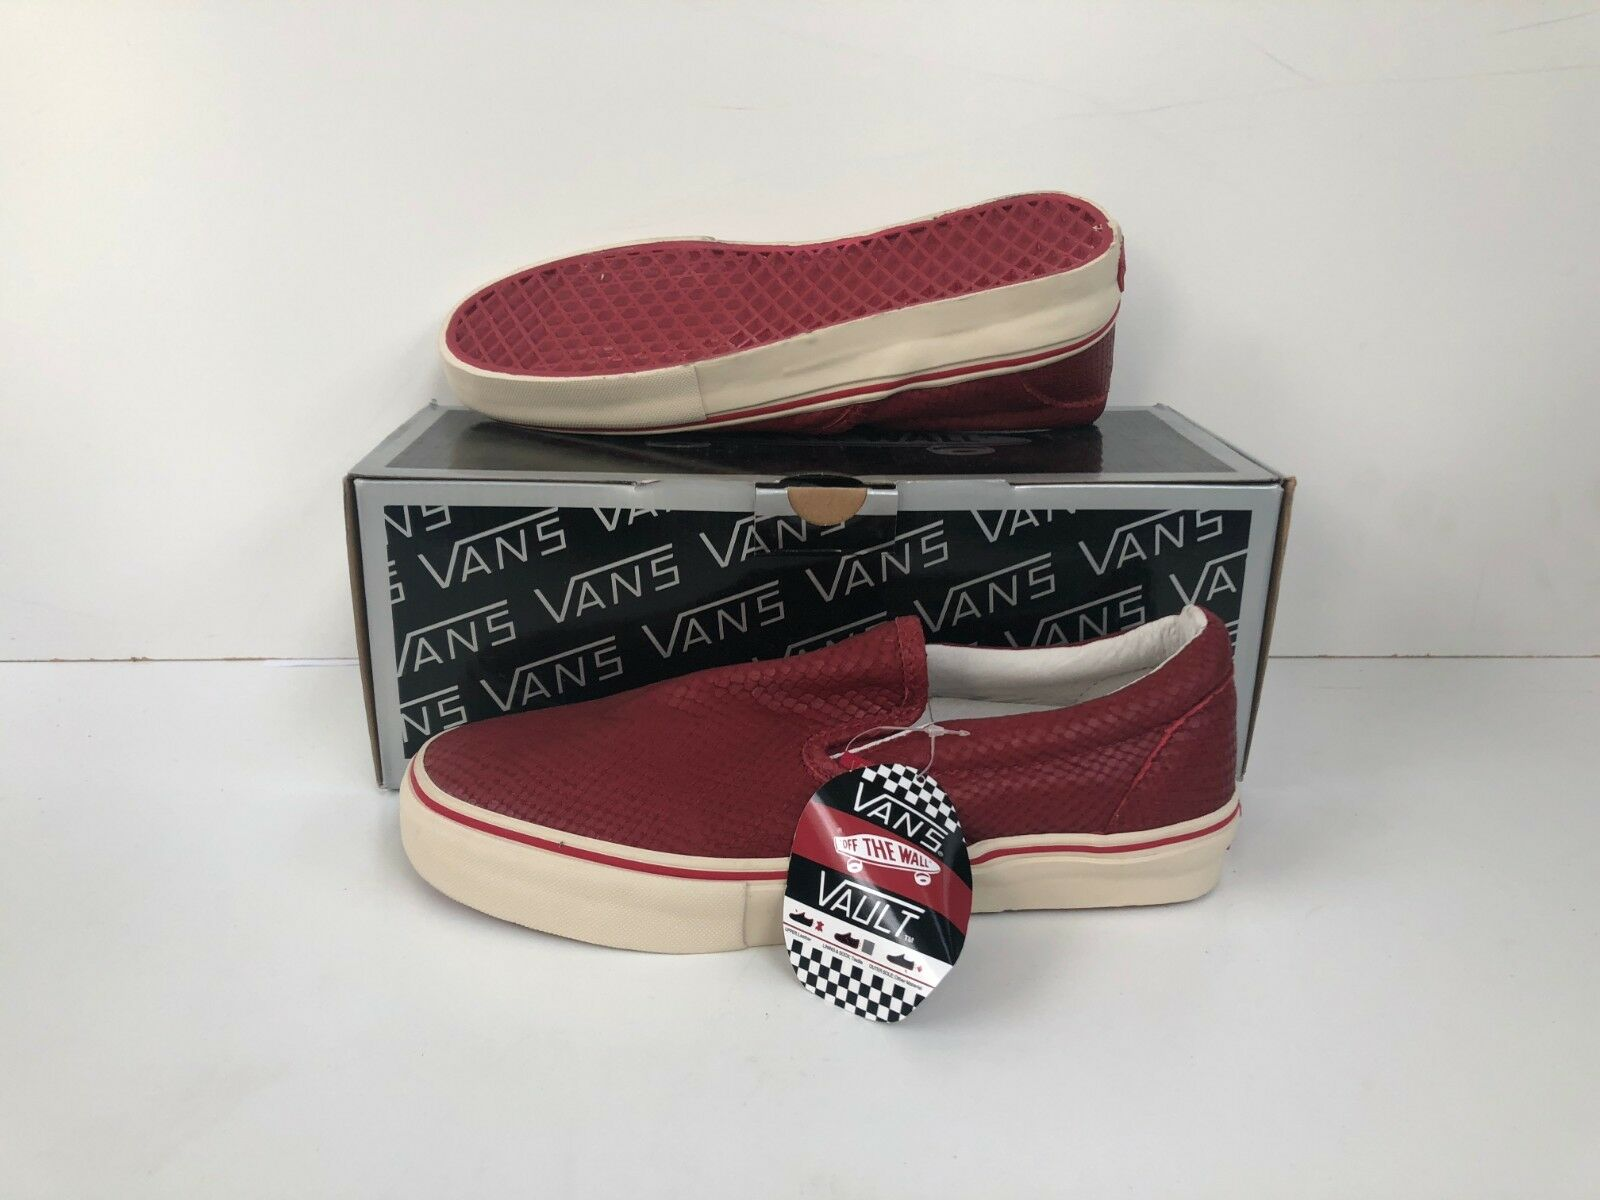 Vans Of The Wall Unisex Classics Slip On LX shoes - UK 7 - Various Colours - New